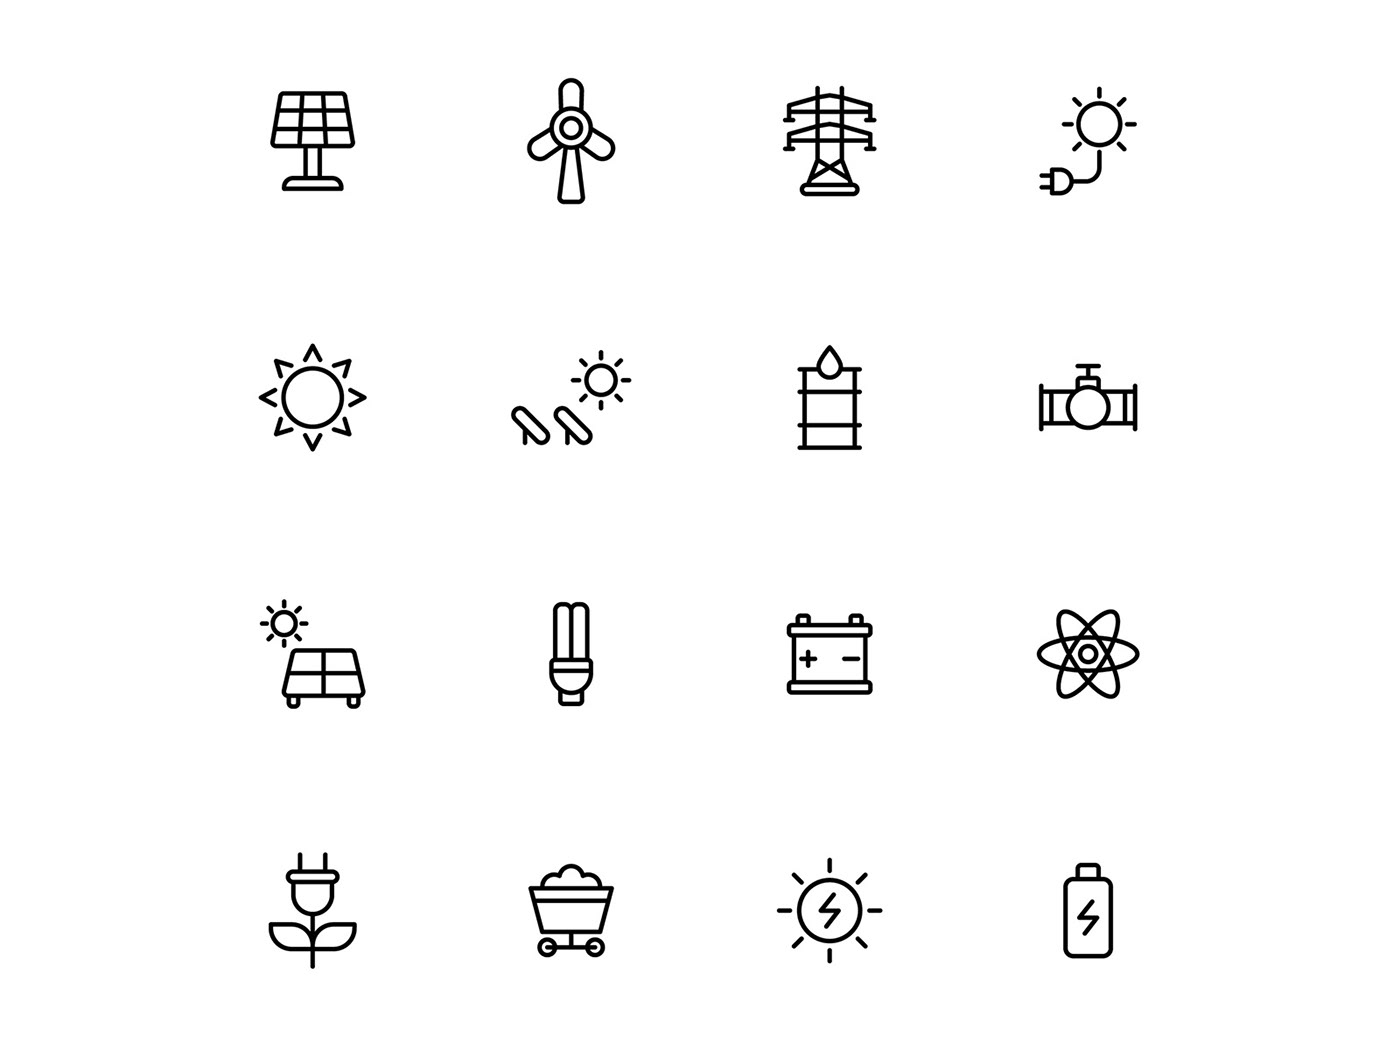 energy energy icon energy vector freebie icon design  icons download icons pack icons set vector design vector icon